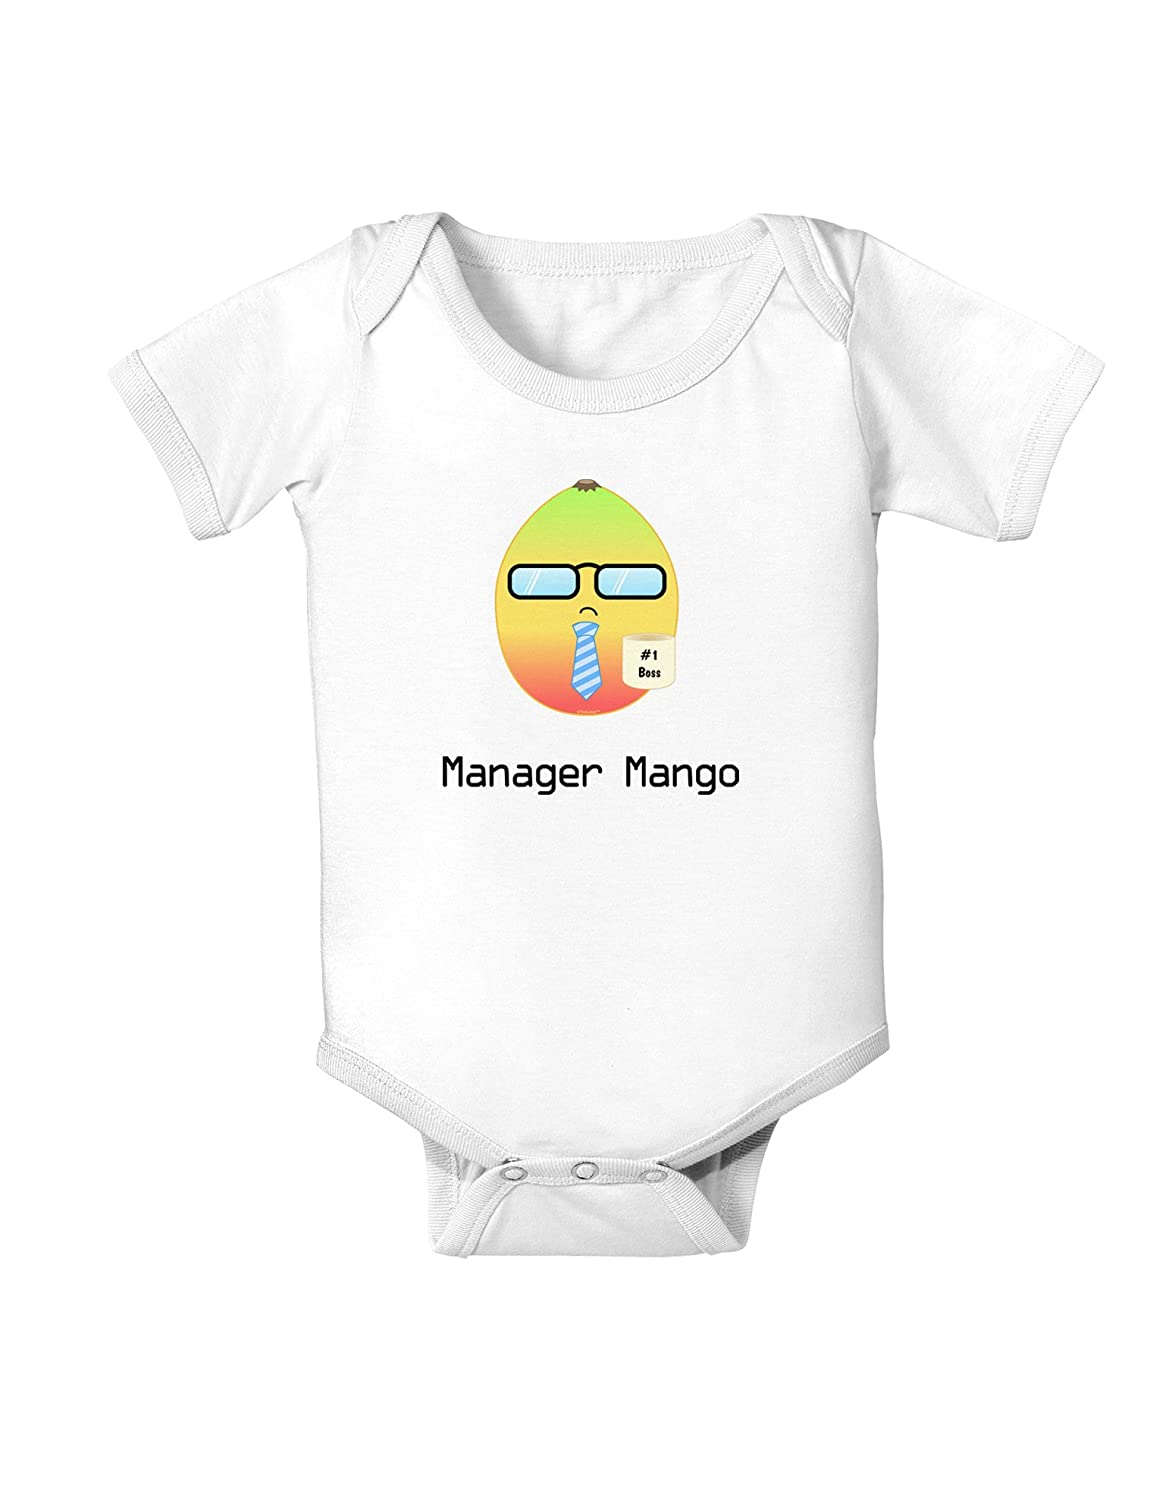 Manager Mango Text Infant One Piece Bodysuit